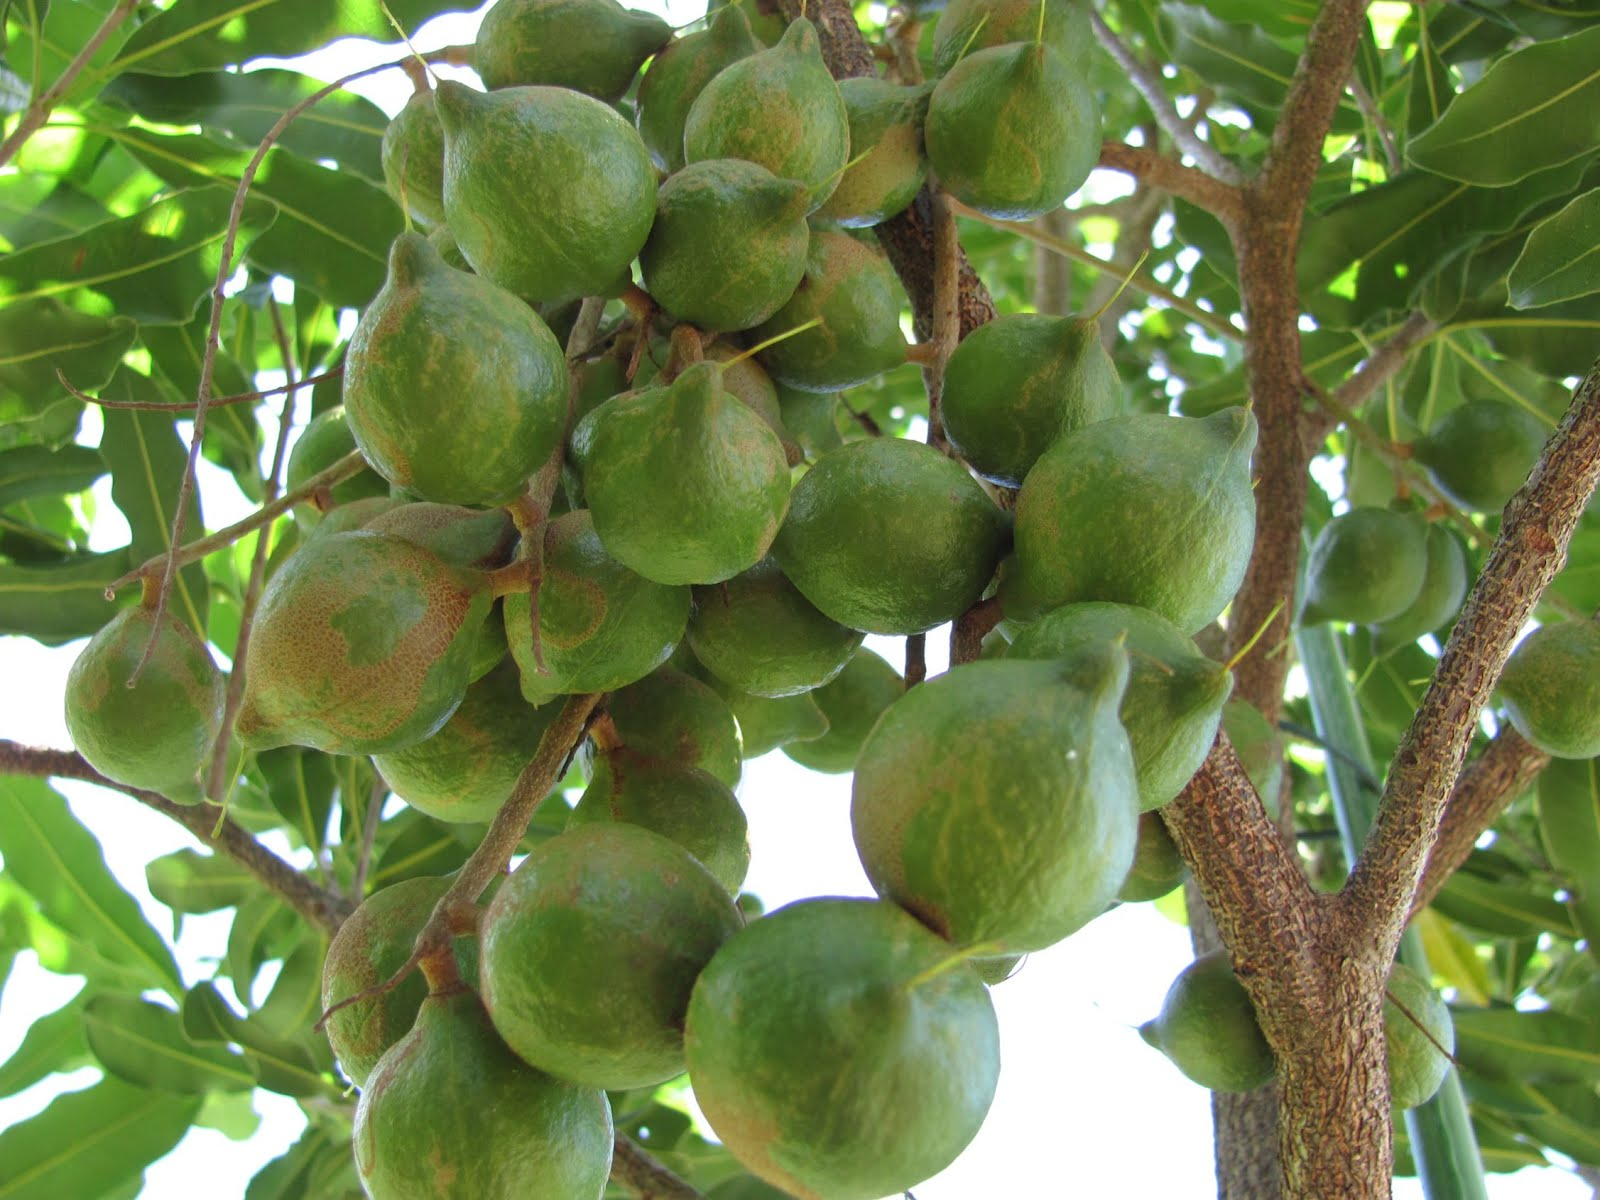 macadamia nuts tree